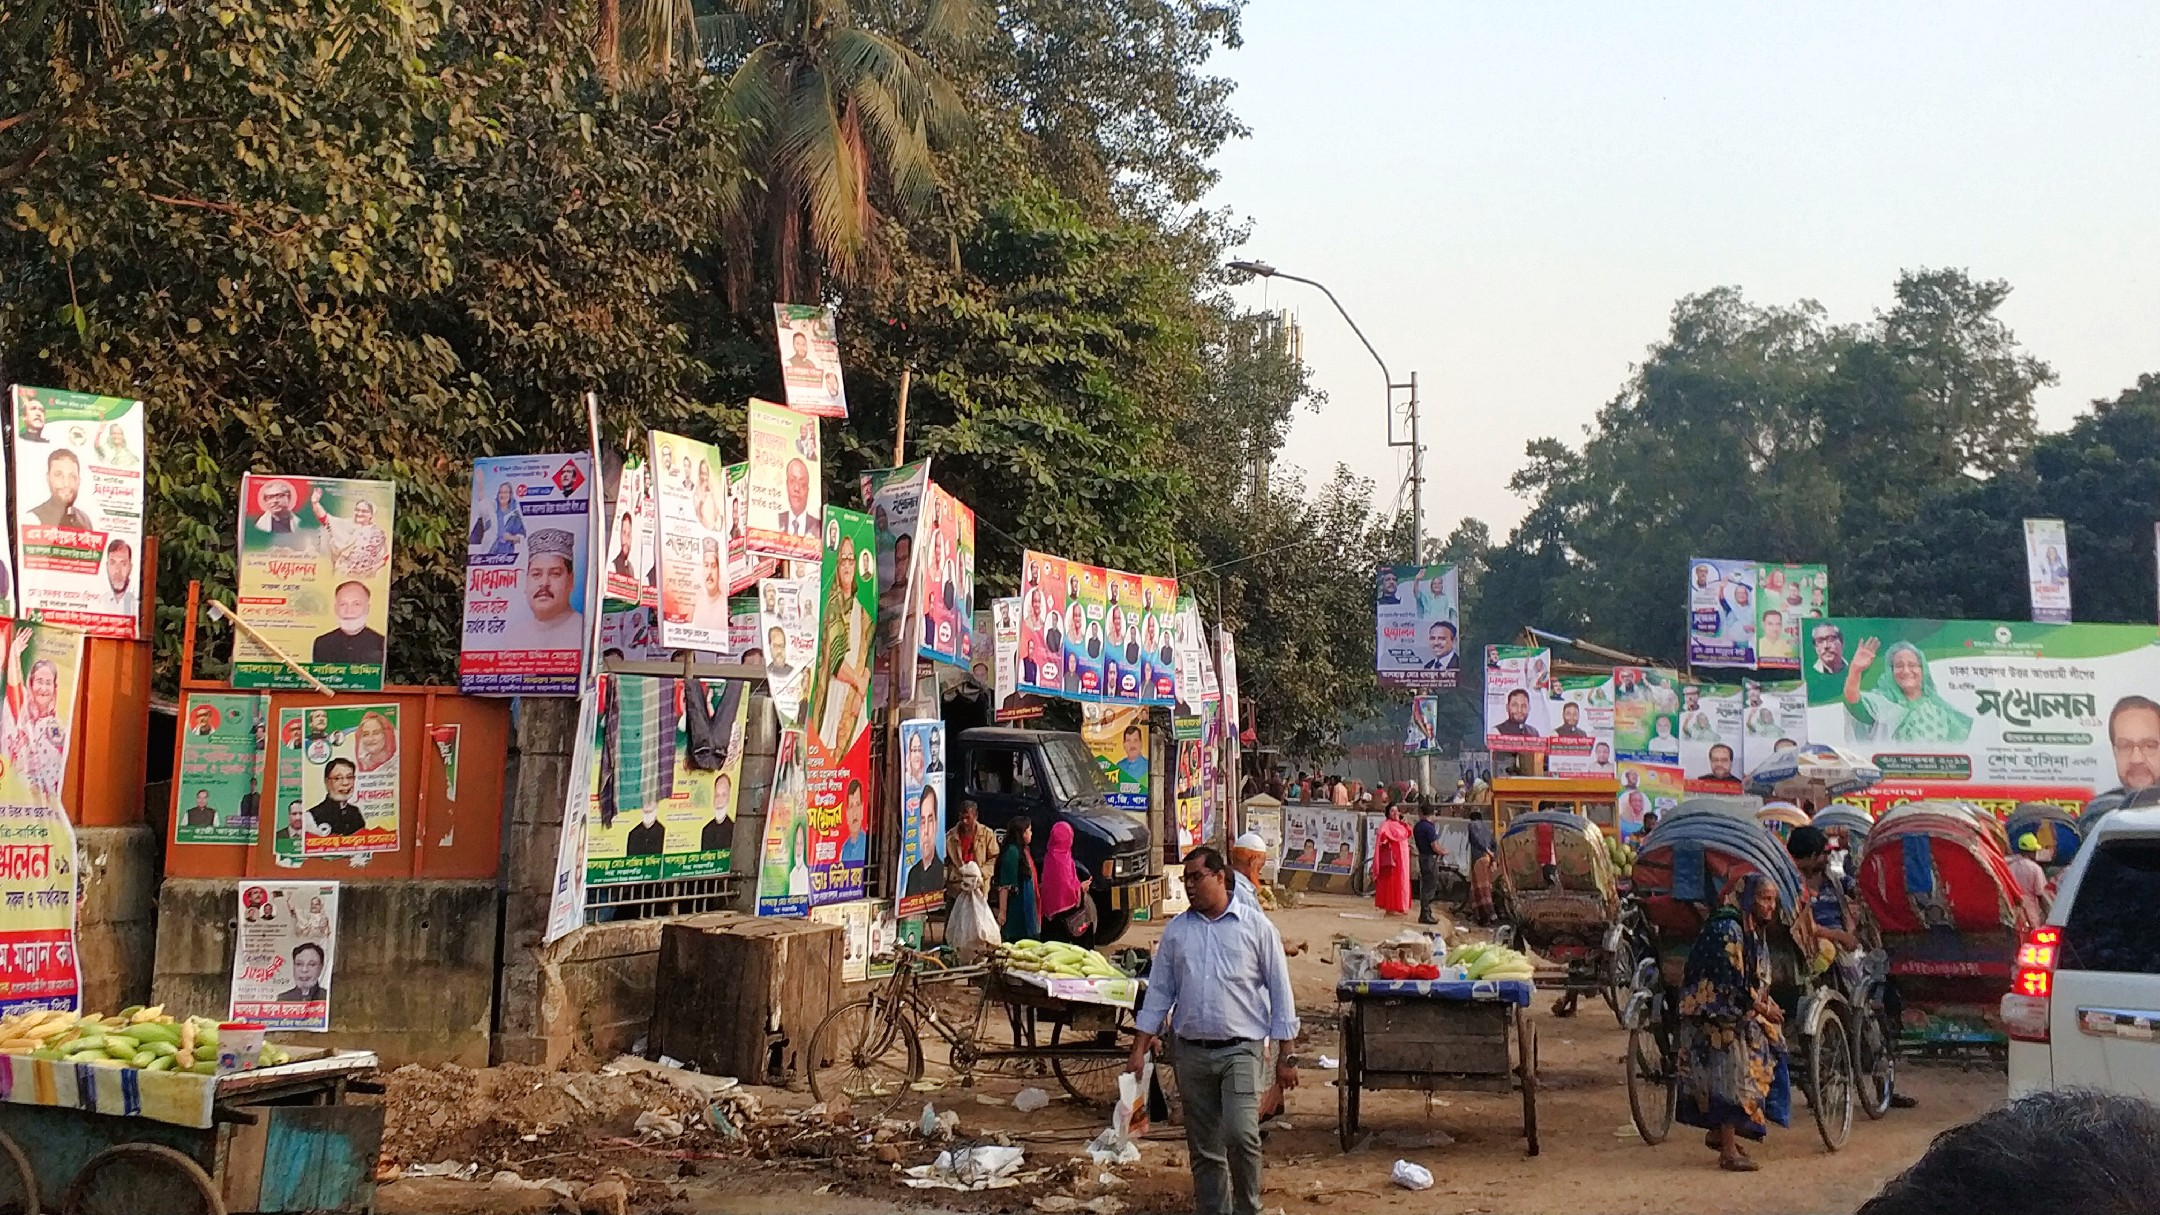 political posters and traffic in Dhaka